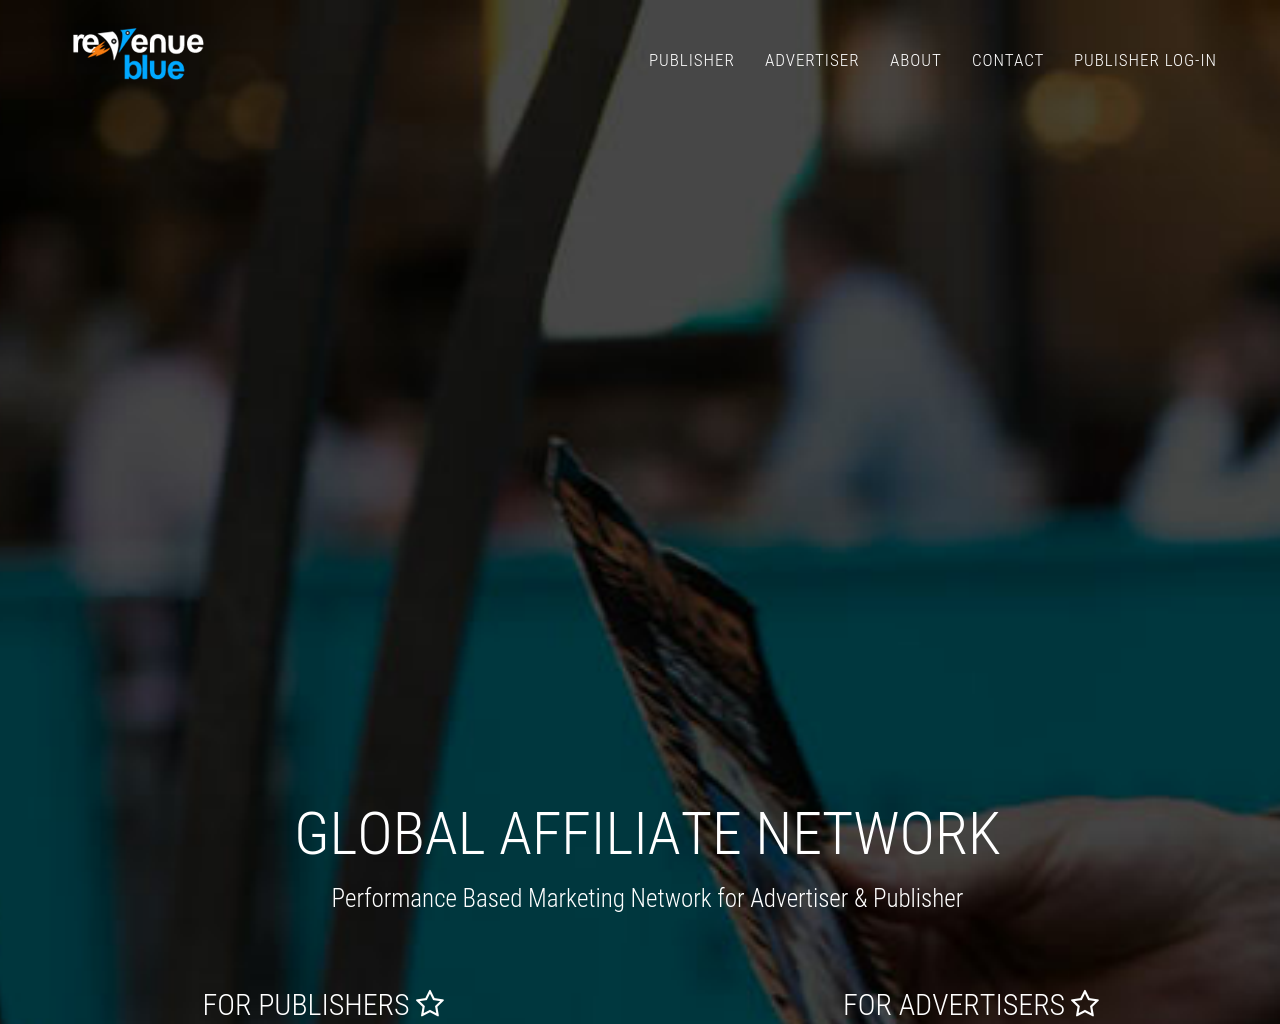 RevenueBlue-Network-Advertising-Reviews-Pricing